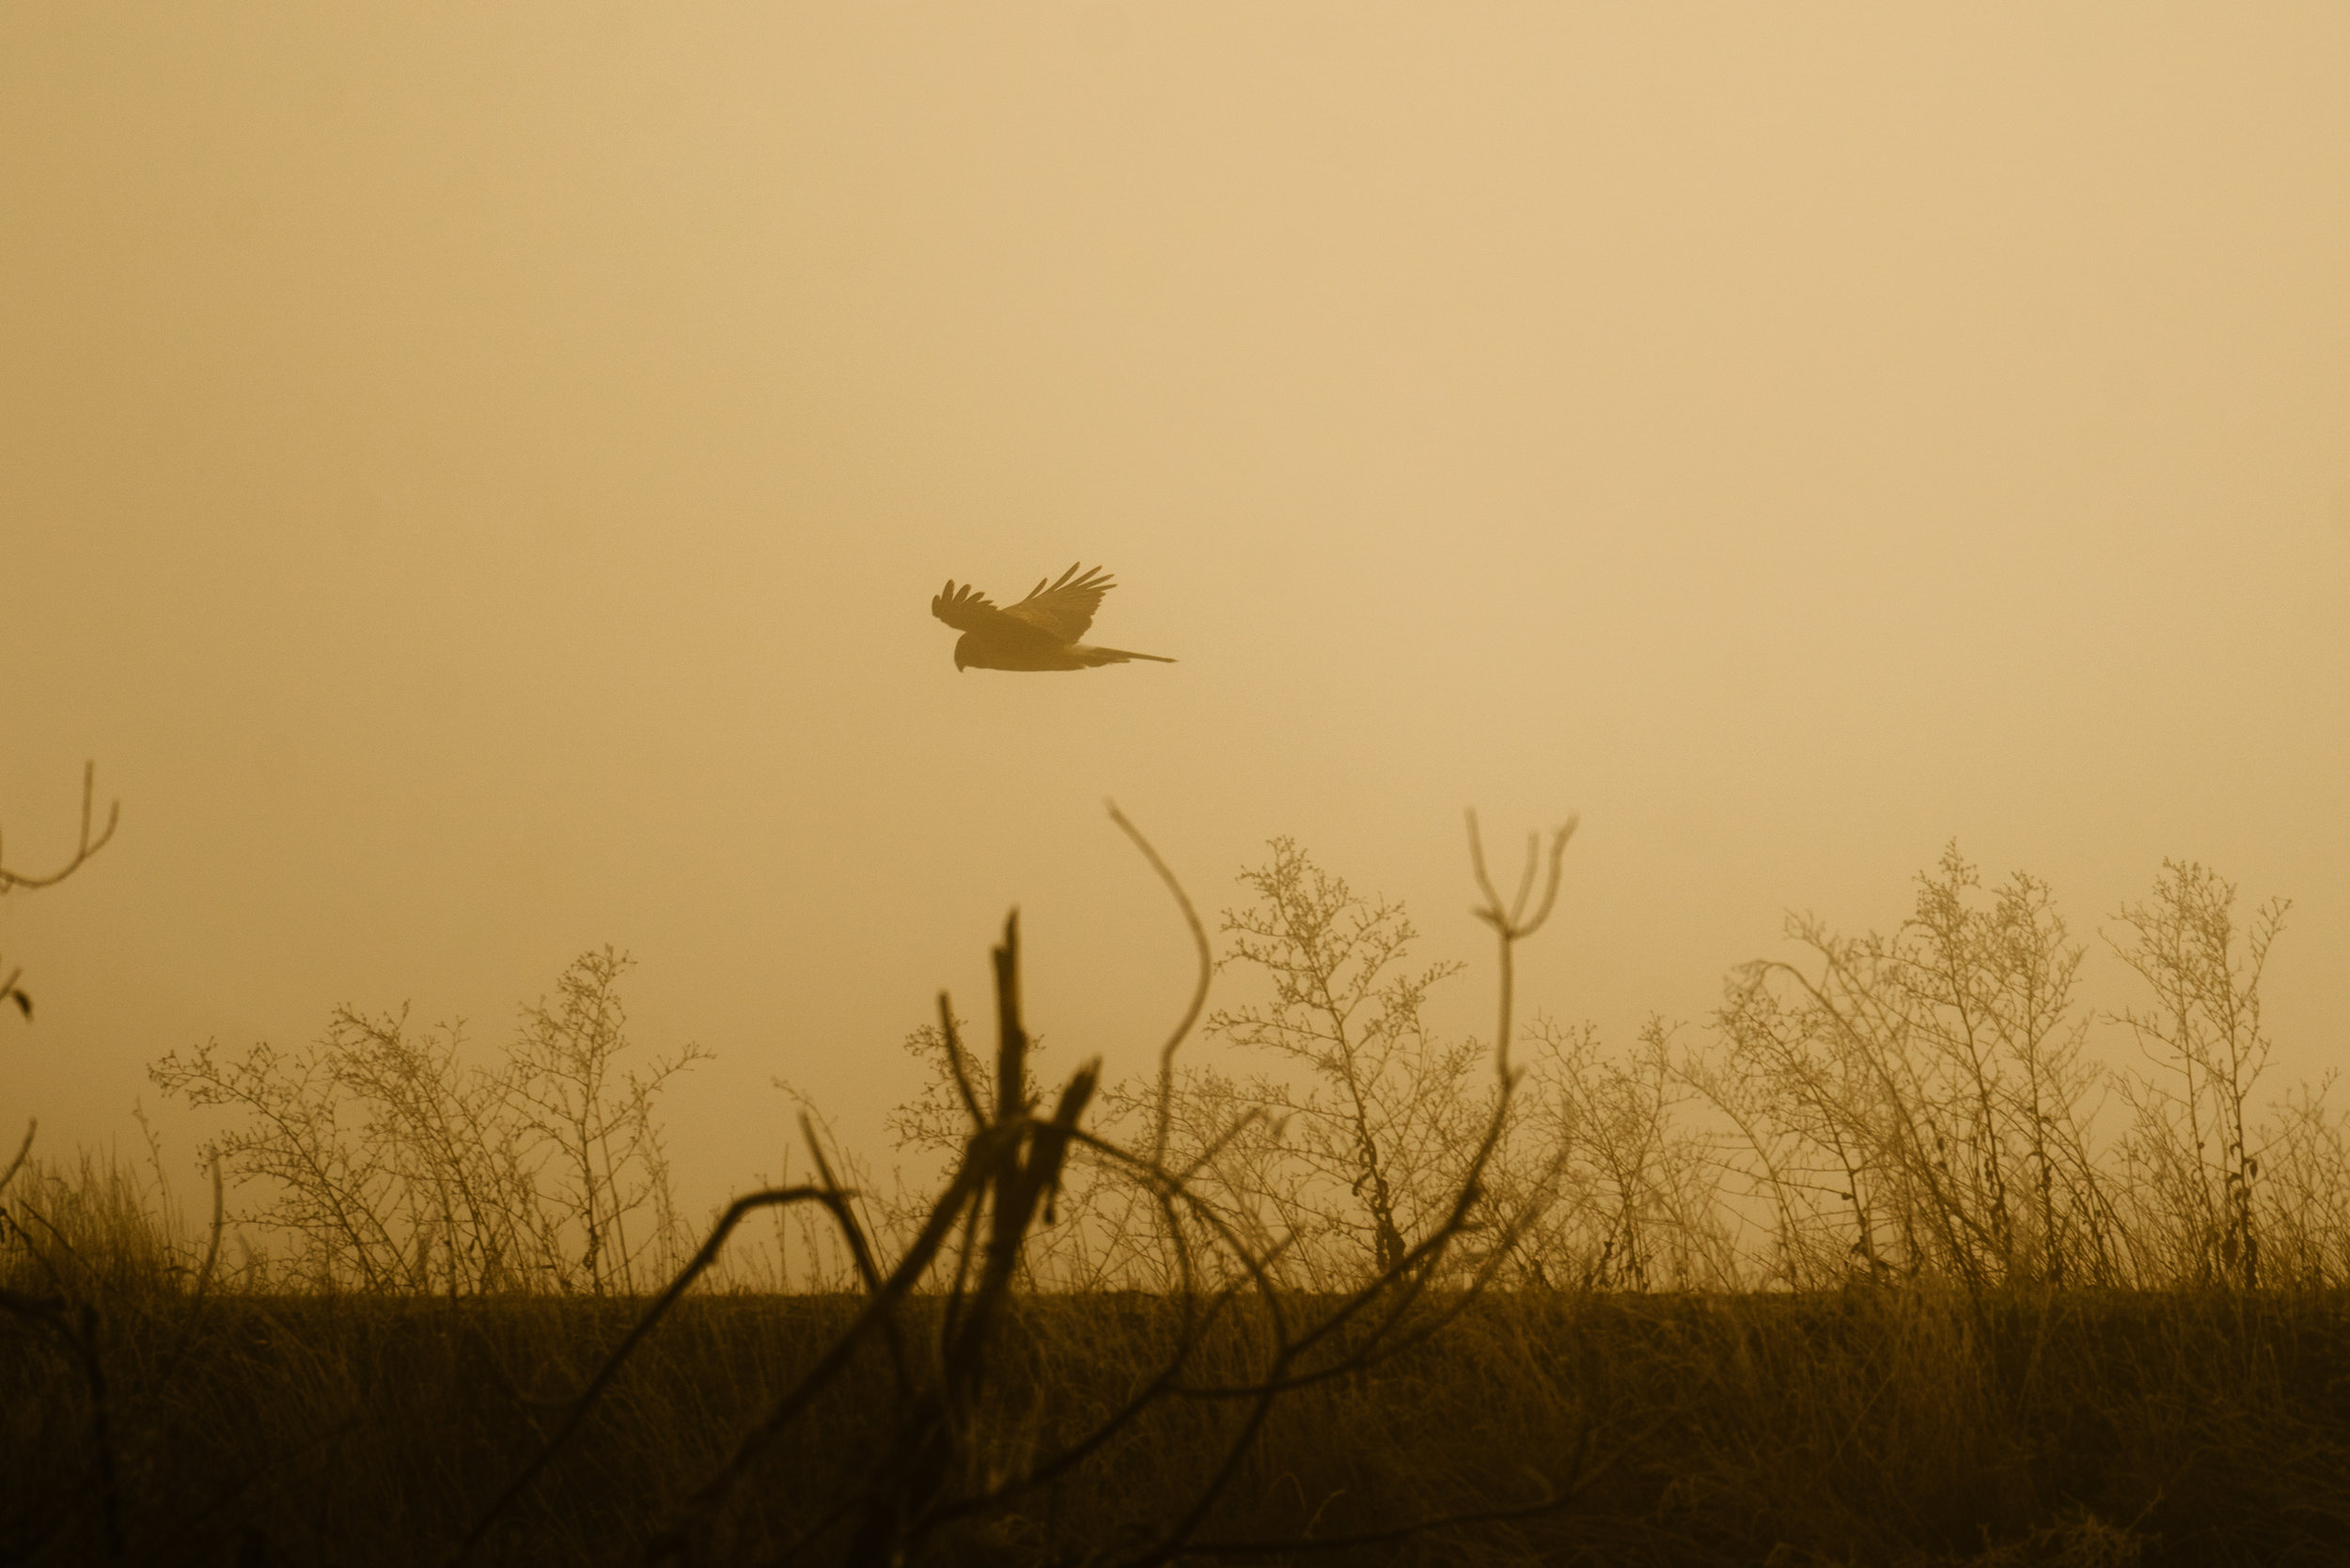 Northern Harrier on the Samish Flats in Washington State